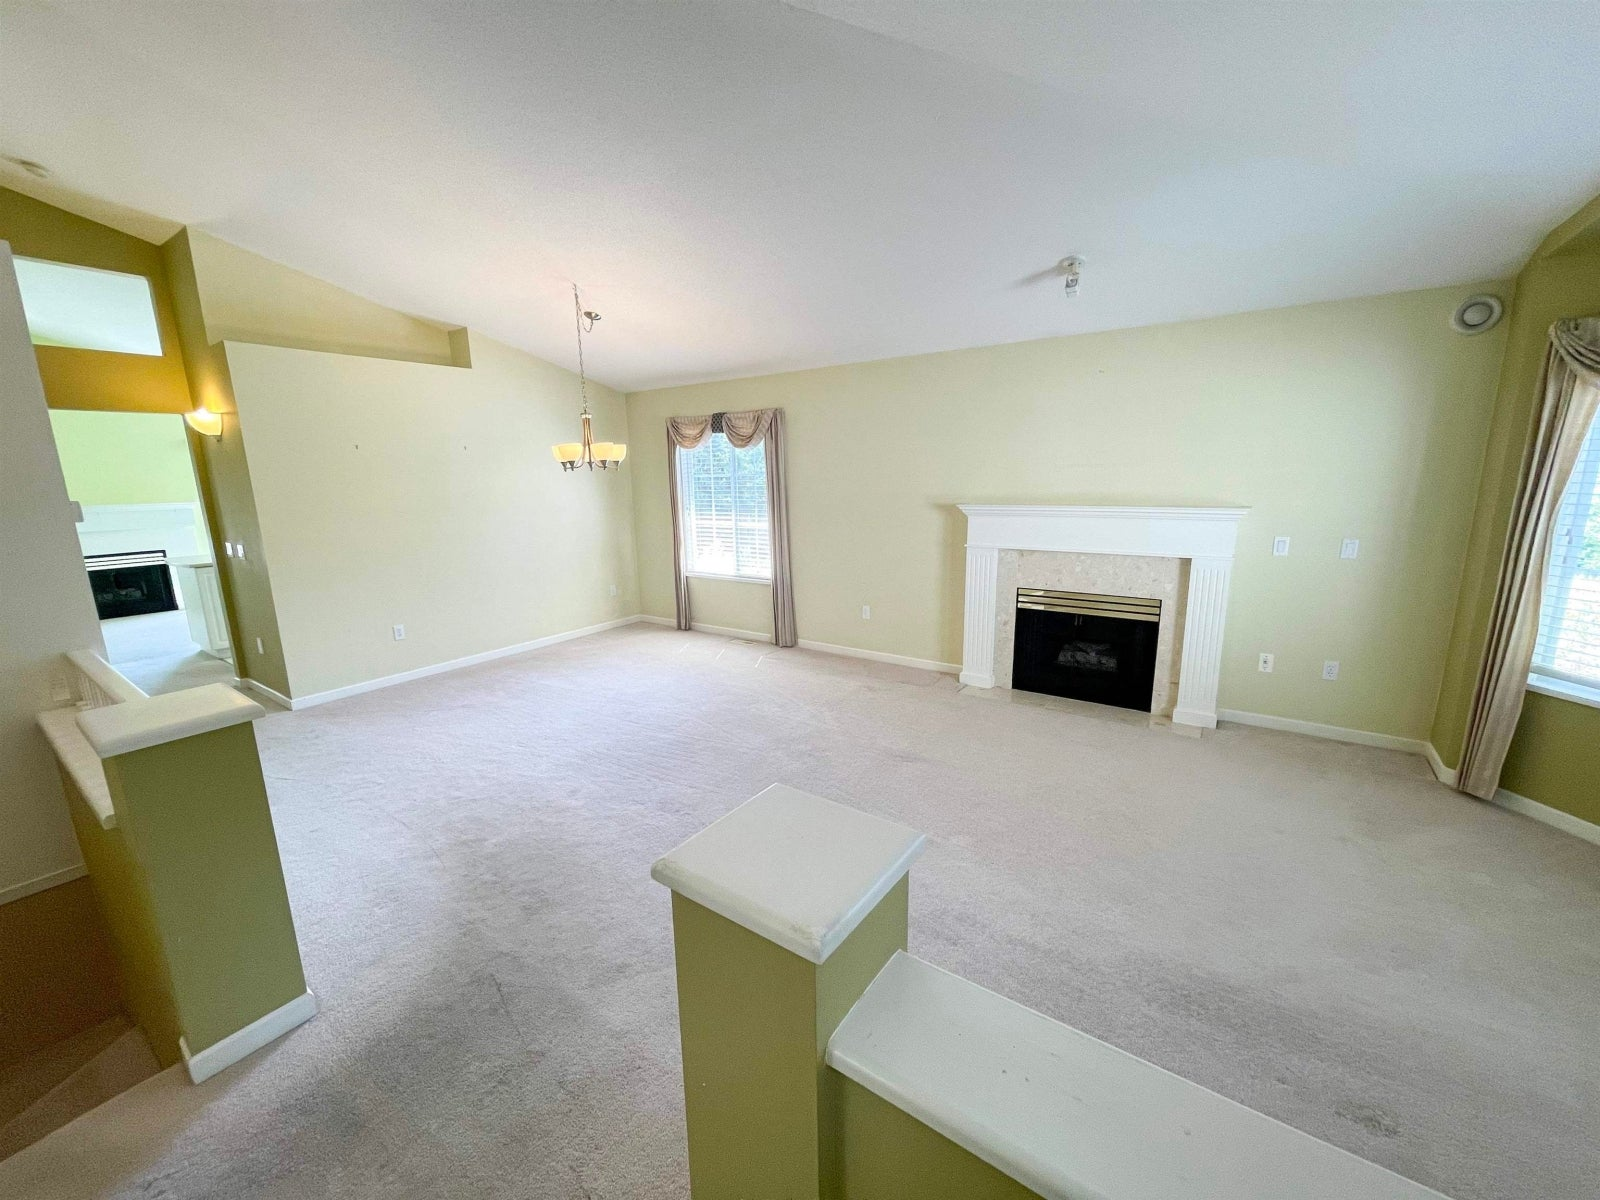 8 16888 80 AVENUE - Fleetwood Tynehead Townhouse for sale, 3 Bedrooms (R2618785) #4